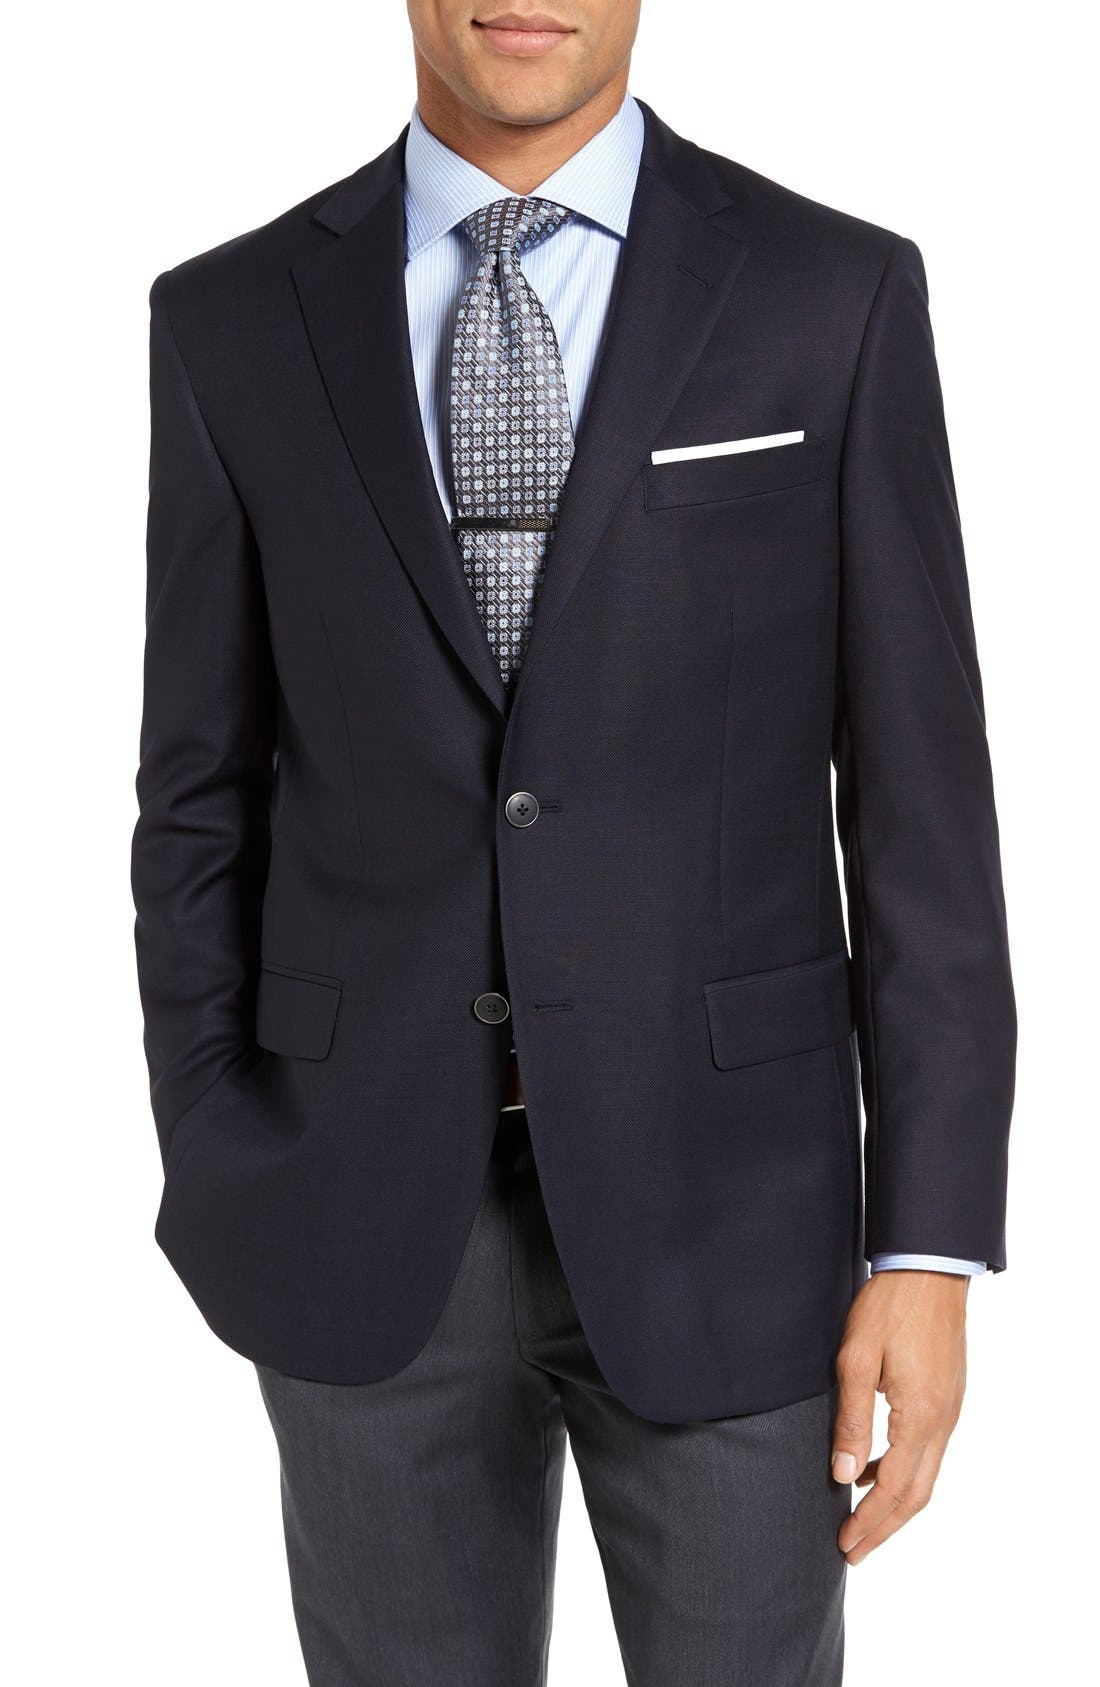 New York Classic Fit Wool Blend Blazer,                             Main thumbnail 1, color,                             Navy